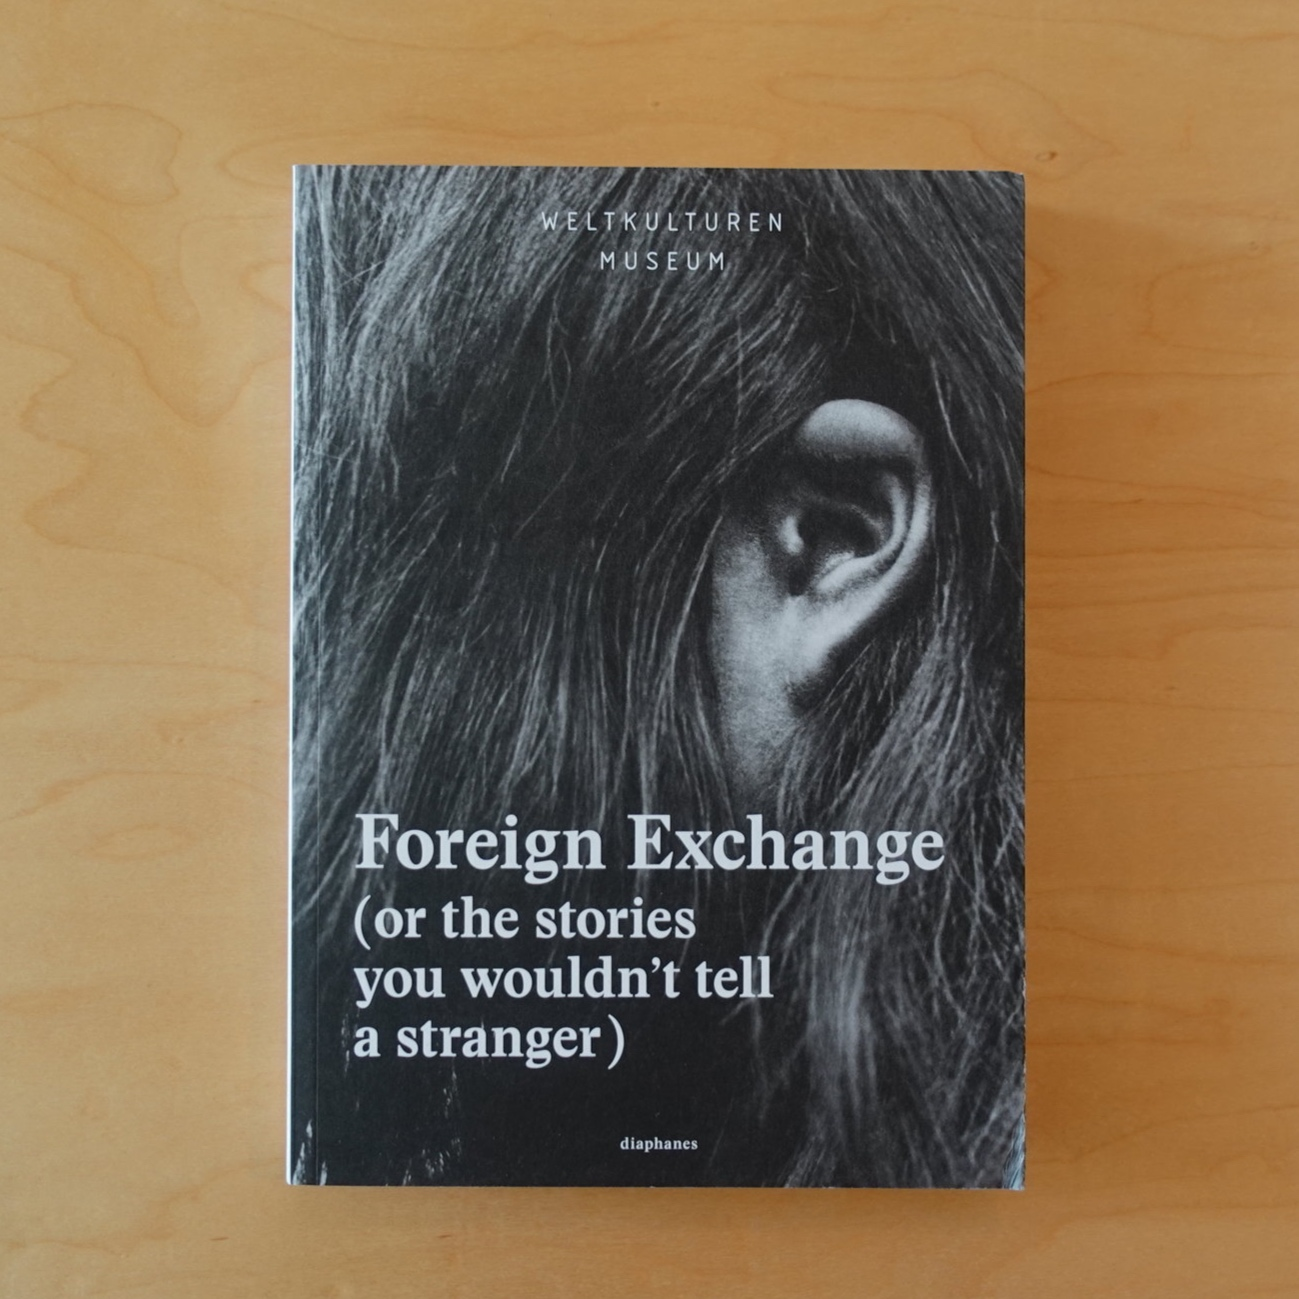 Foreign Exchange (or the stories you wouldn't tell a stranger)